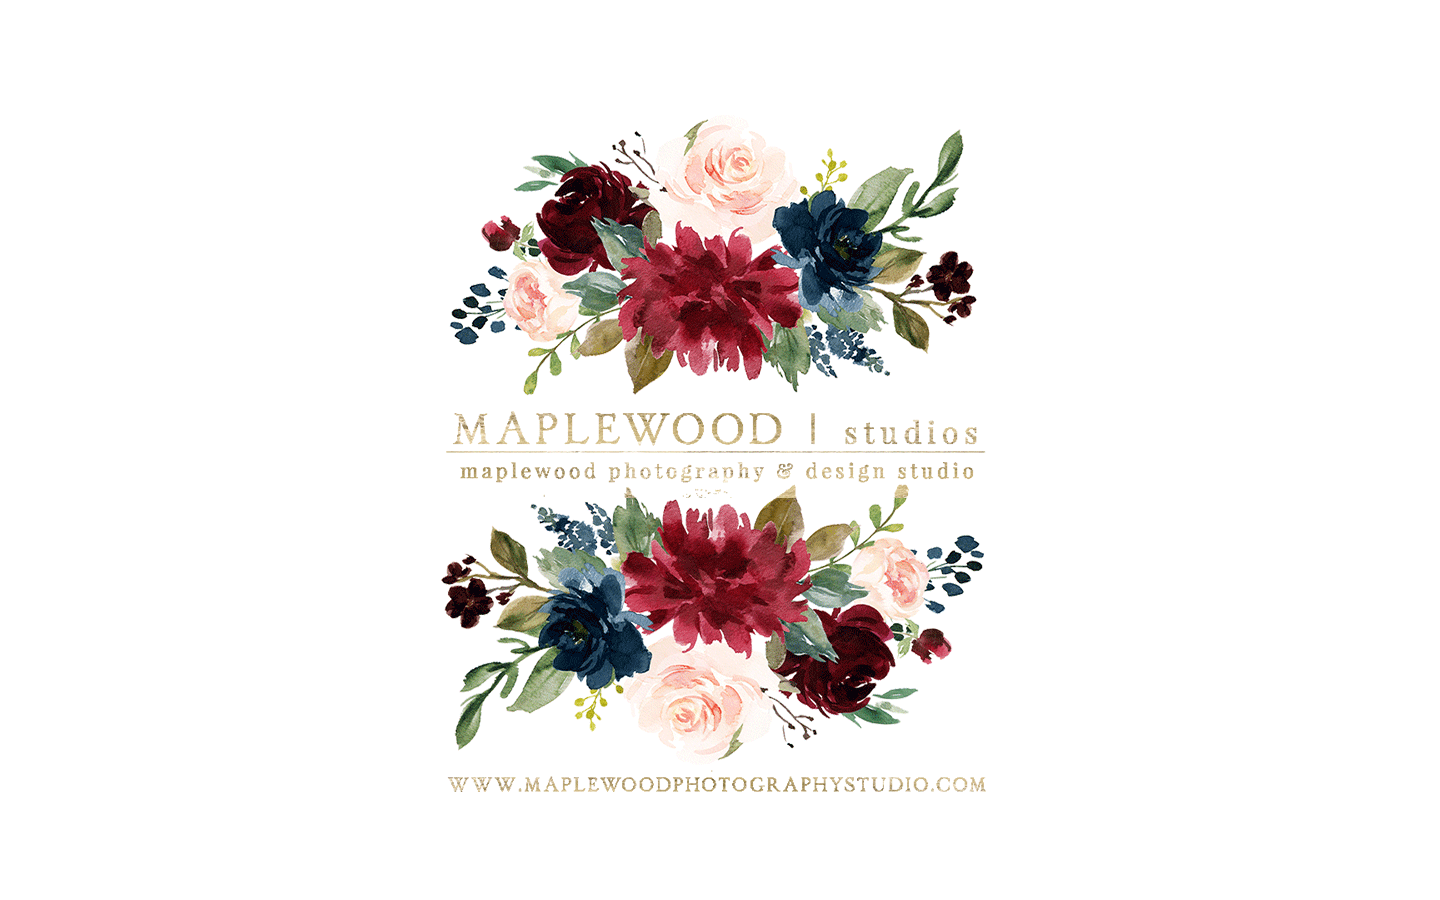 Maplewood Photography & Design